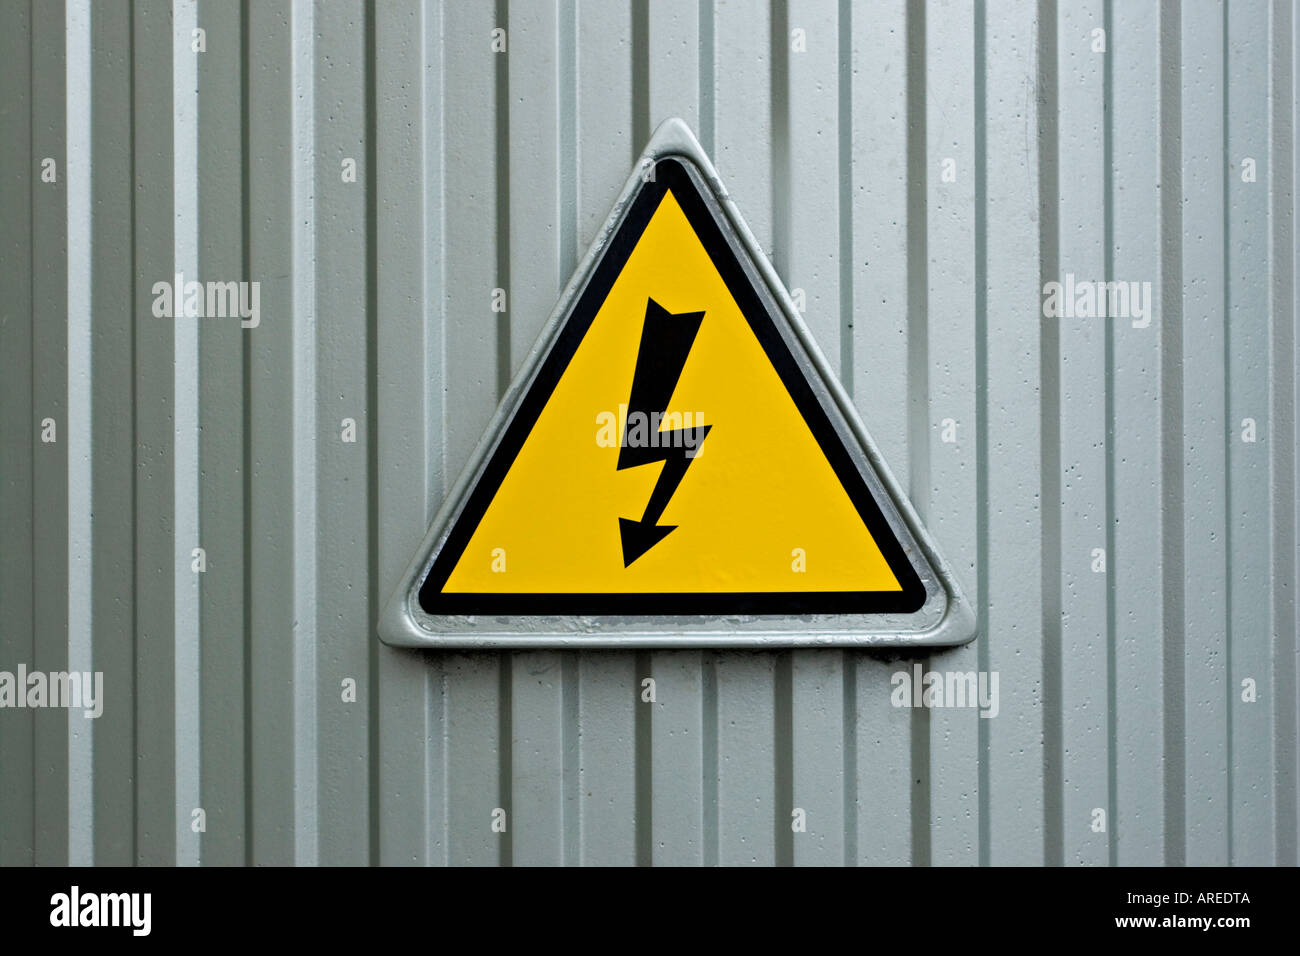 Warning sign with electricity lightning bolt Stock Photo, Royalty ... for Electricity Lightning Bolt  55dqh